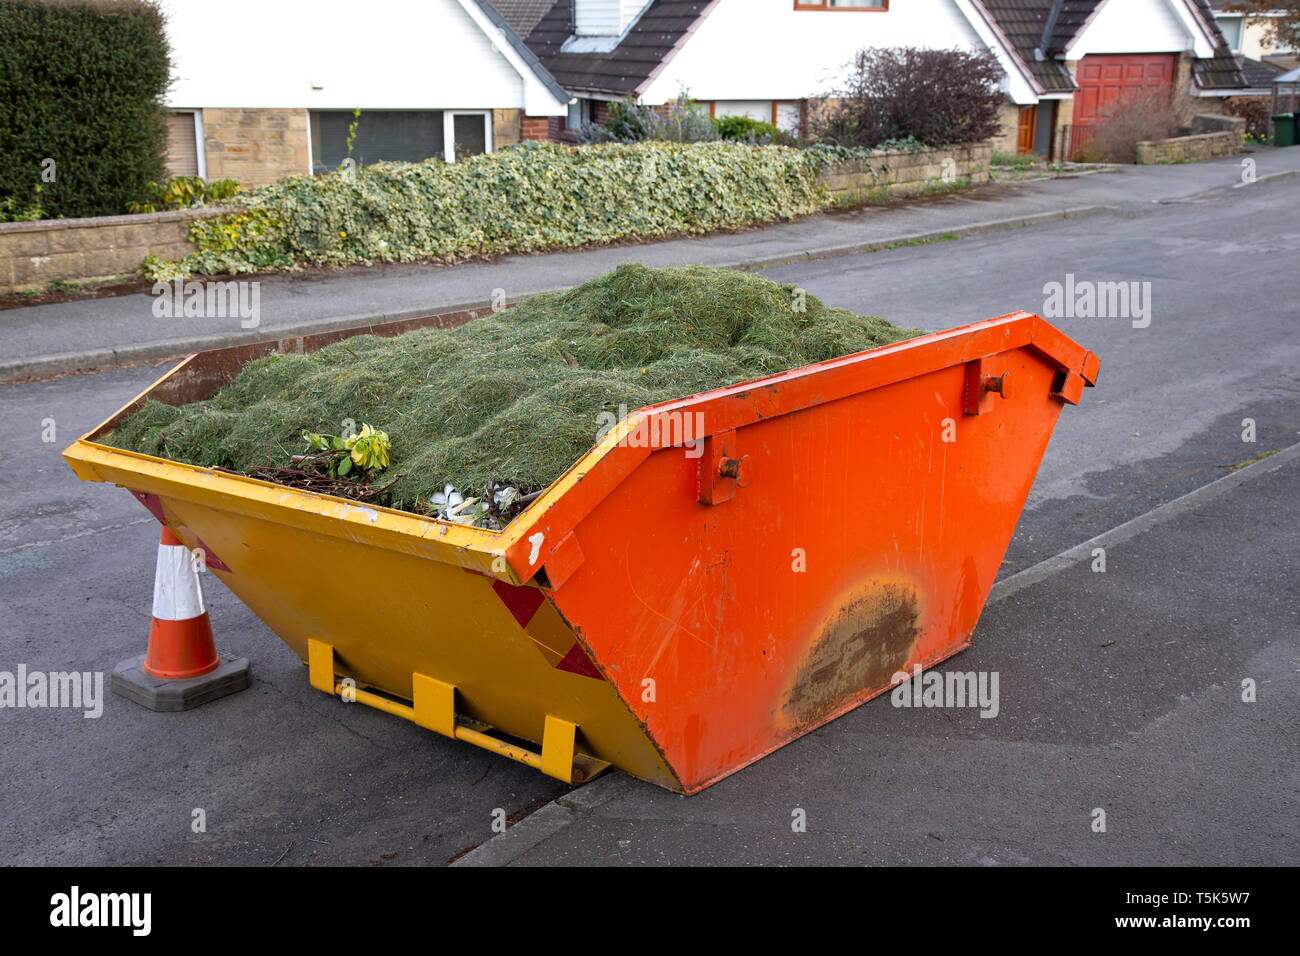 View of a skip on a public road filled with garden rubbish - Stock Image